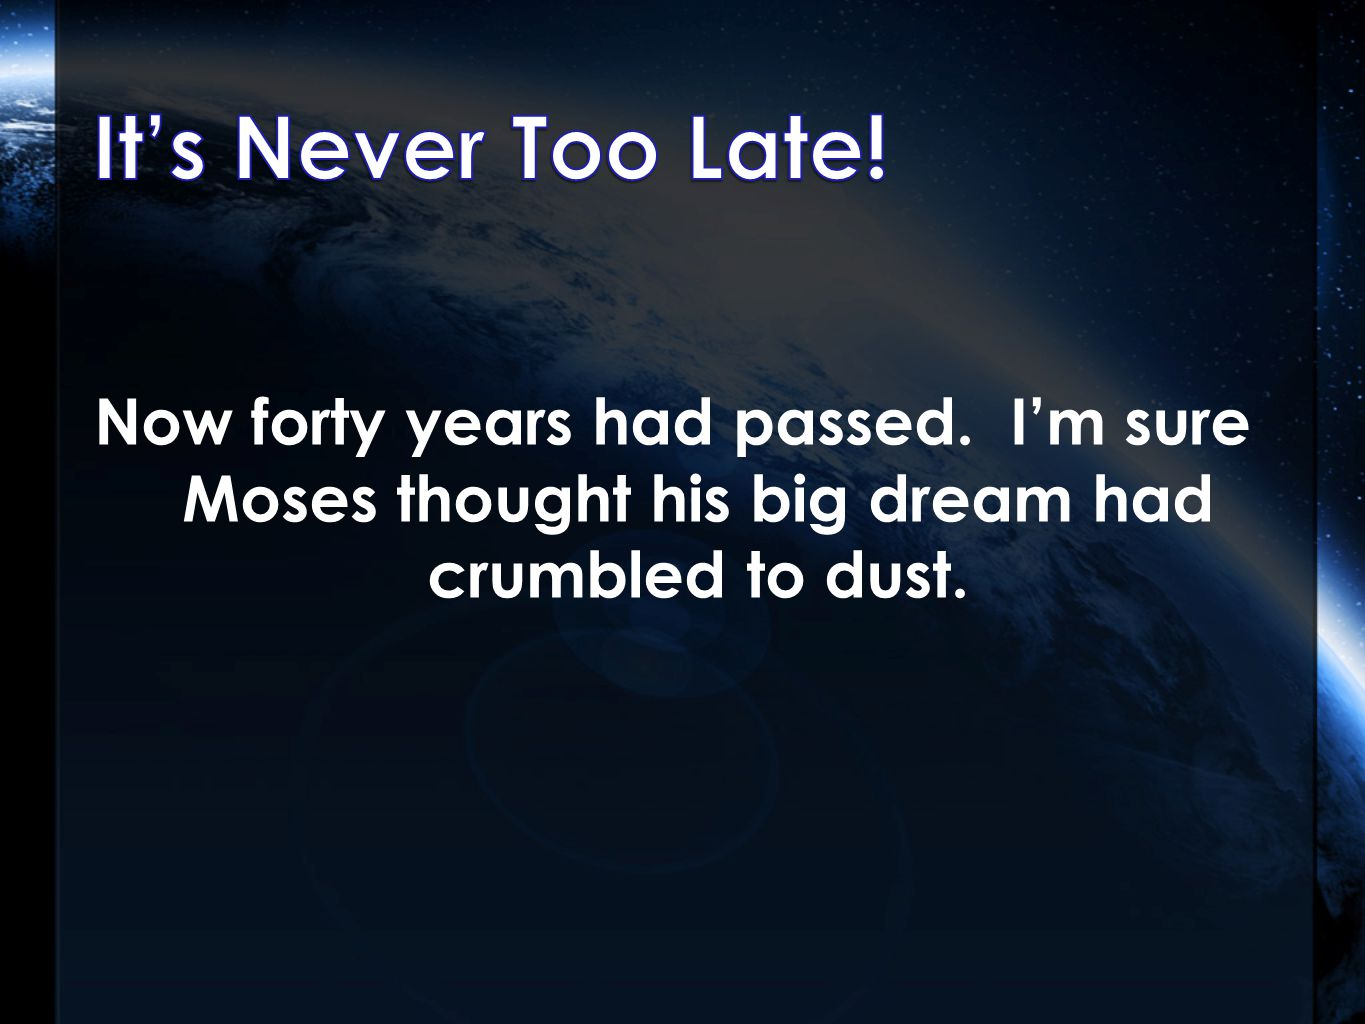 Now forty years had passed. I'm sure Moses thought his big dream had crumbled to dust.